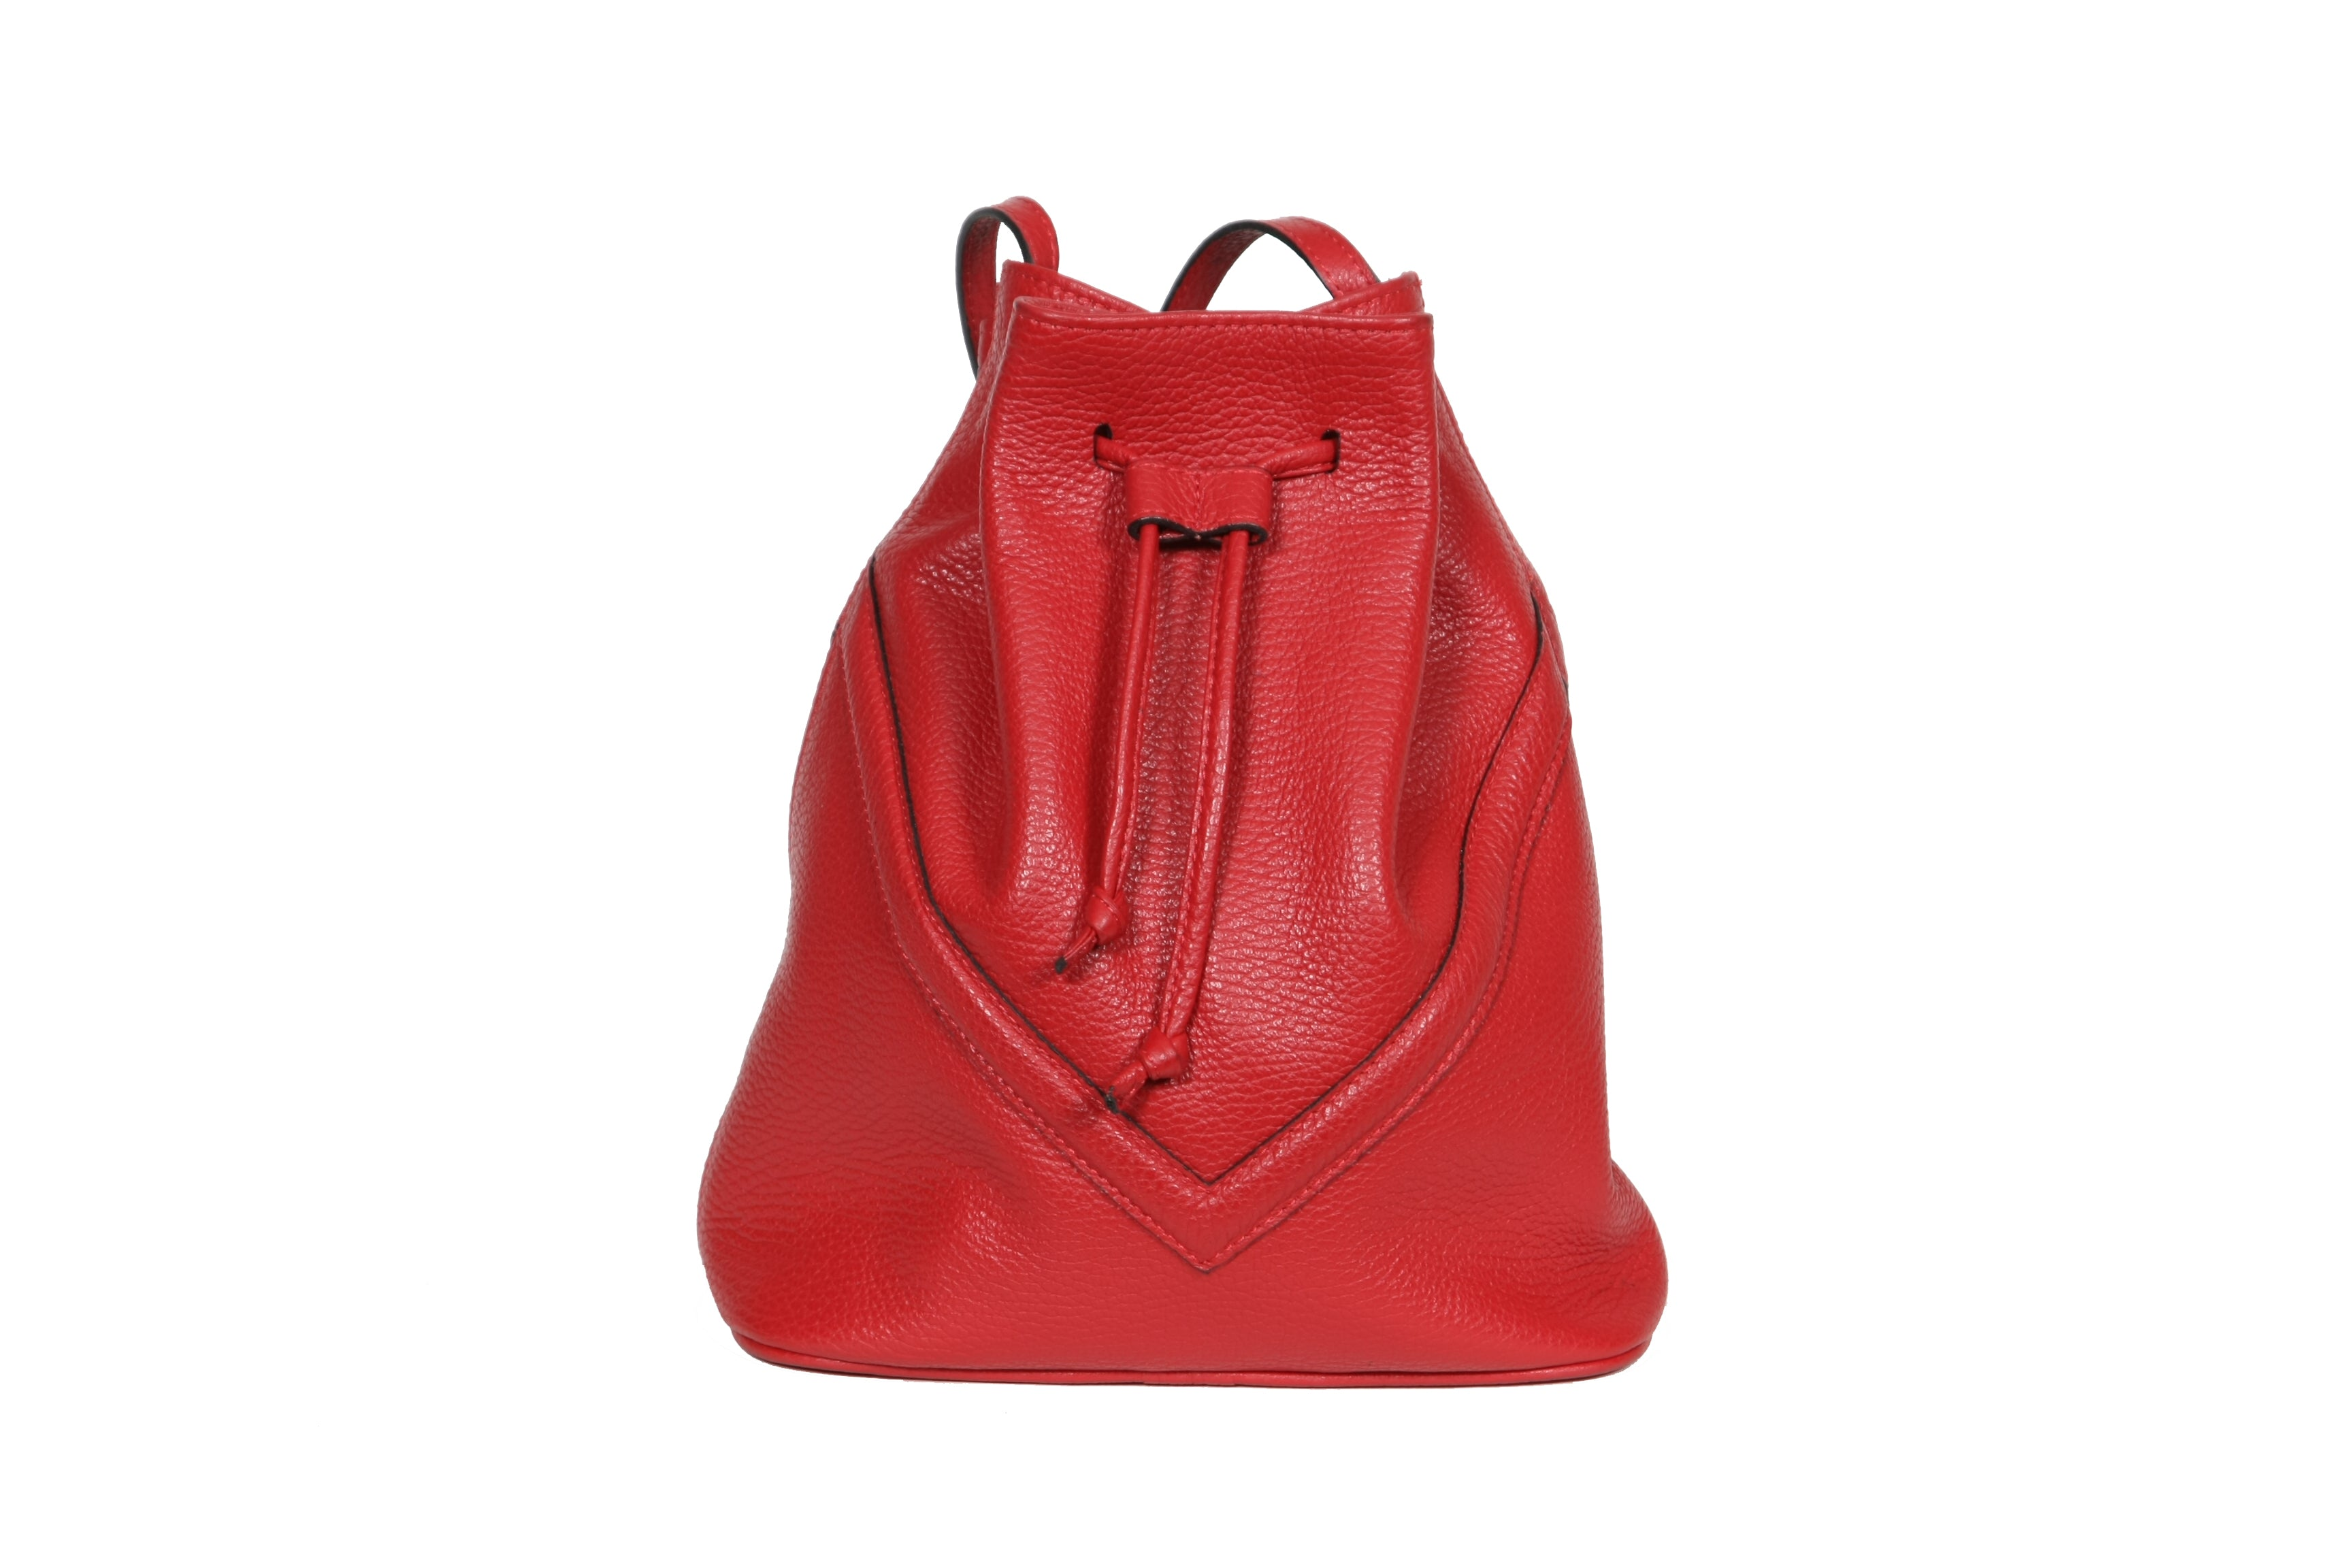 Bucket Bag Red Leather